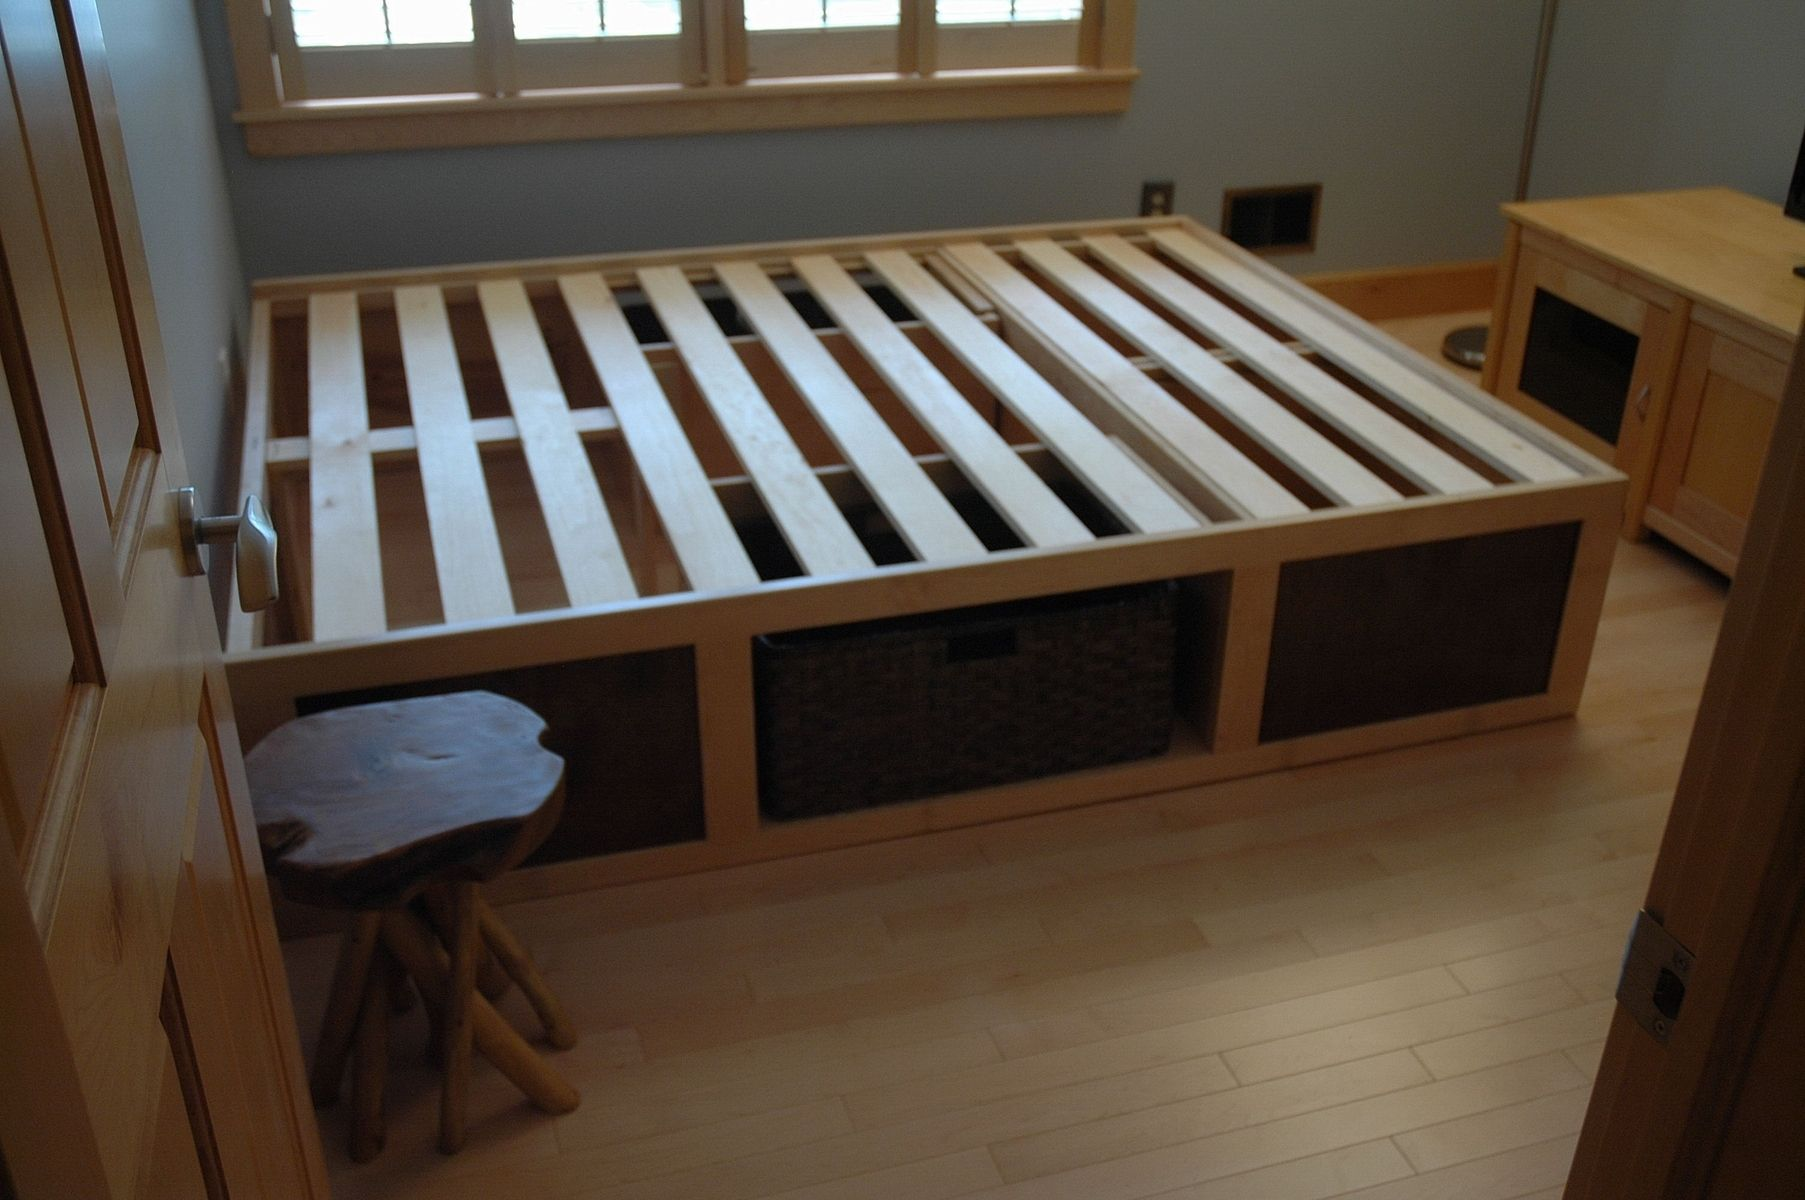 "60"" X 80"" Platform Bed With Storage Baskets"